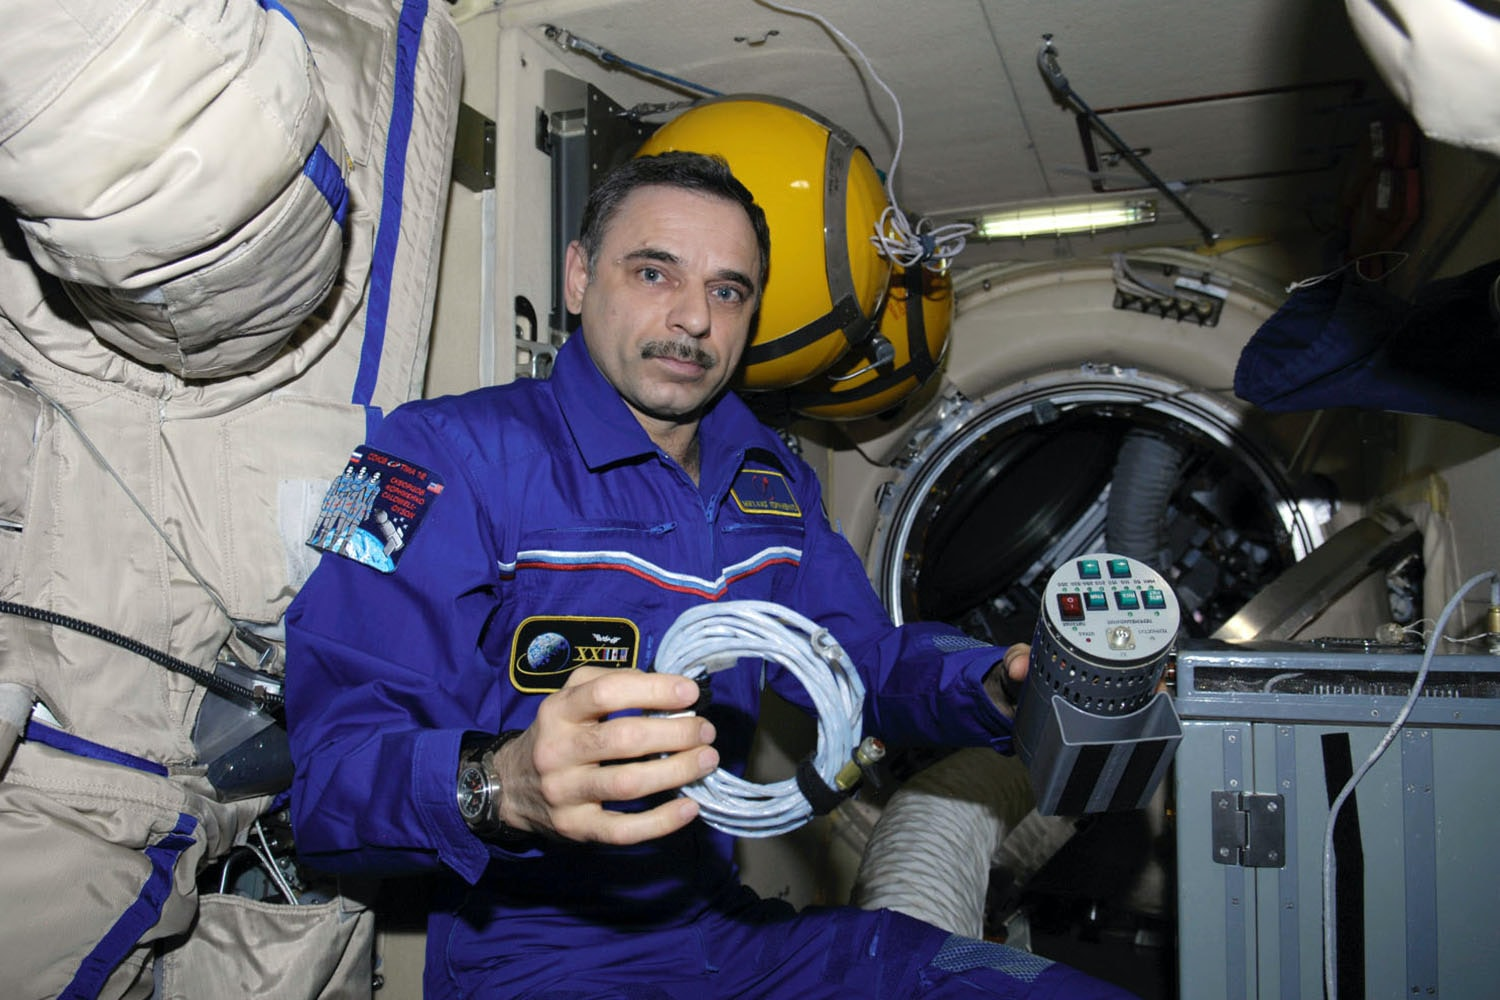 The Watches Worn By NASA Astronaut Scott Kelly, Holder Of New U.S. Spaceflight Endurance Record The Watches Worn By NASA Astronaut Scott Kelly, Holder Of New U.S. Spaceflight Endurance Record iss024e014830